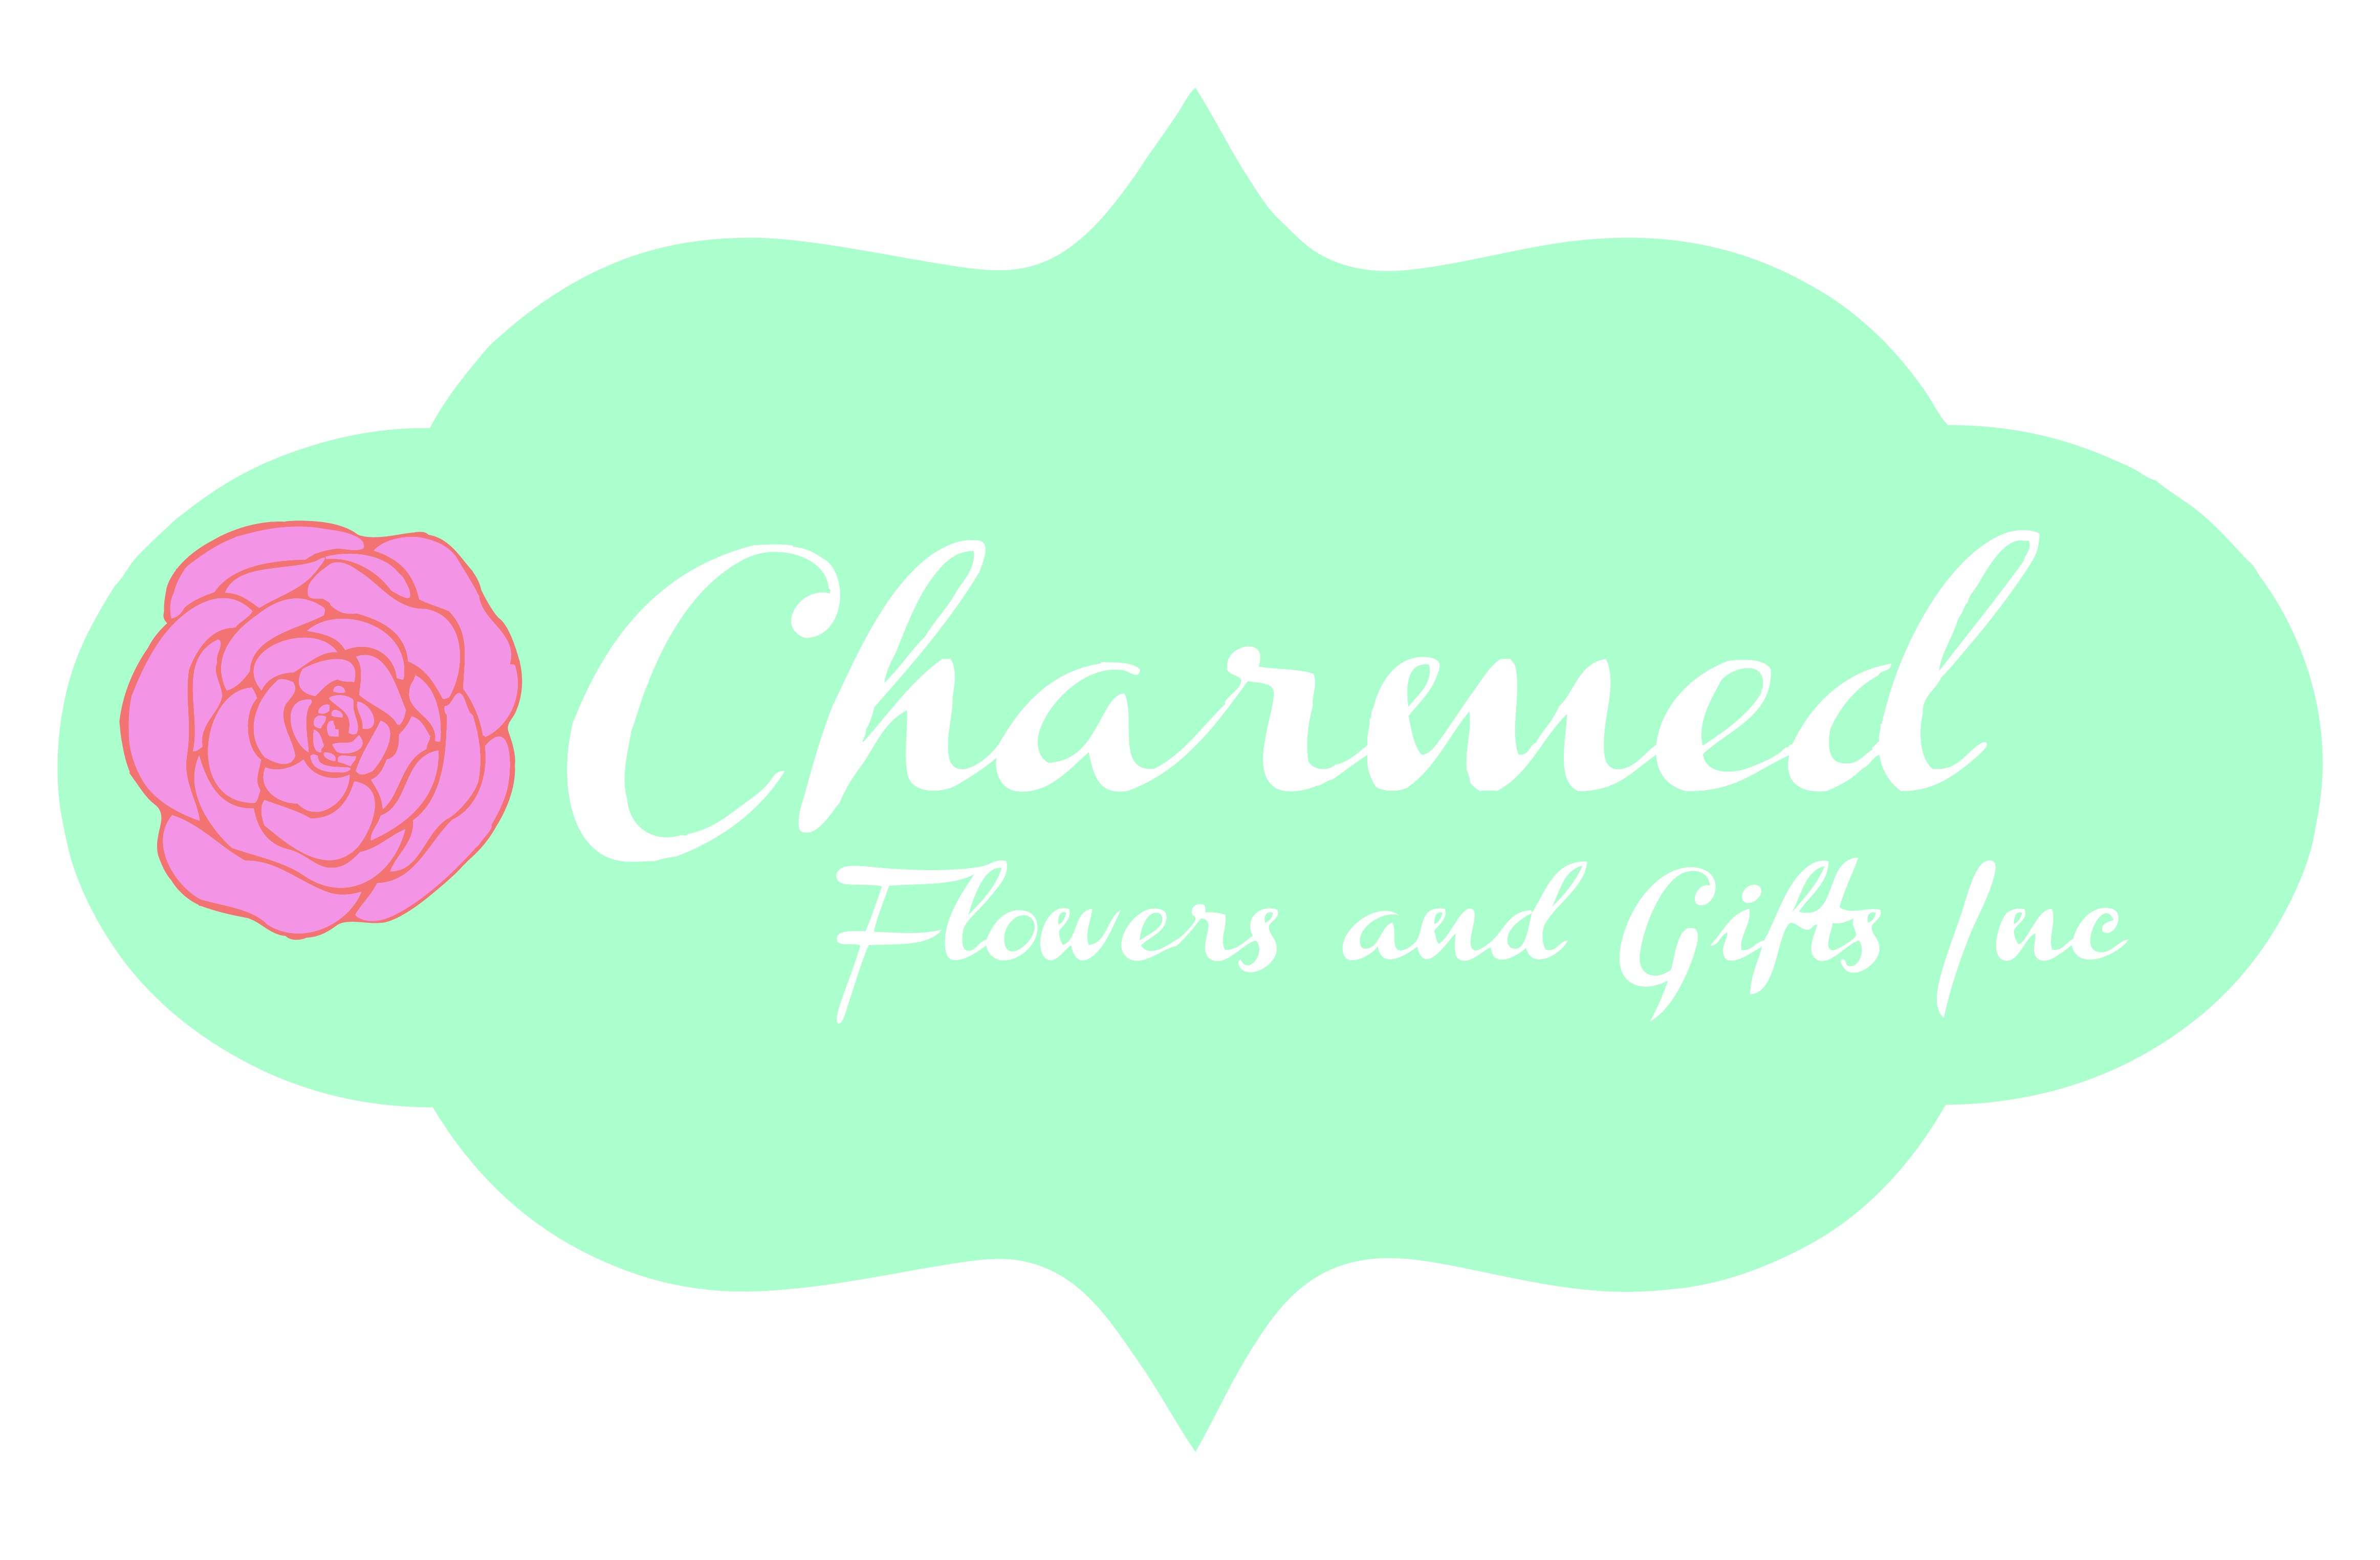 Charmed Flowers and Gifts Inc